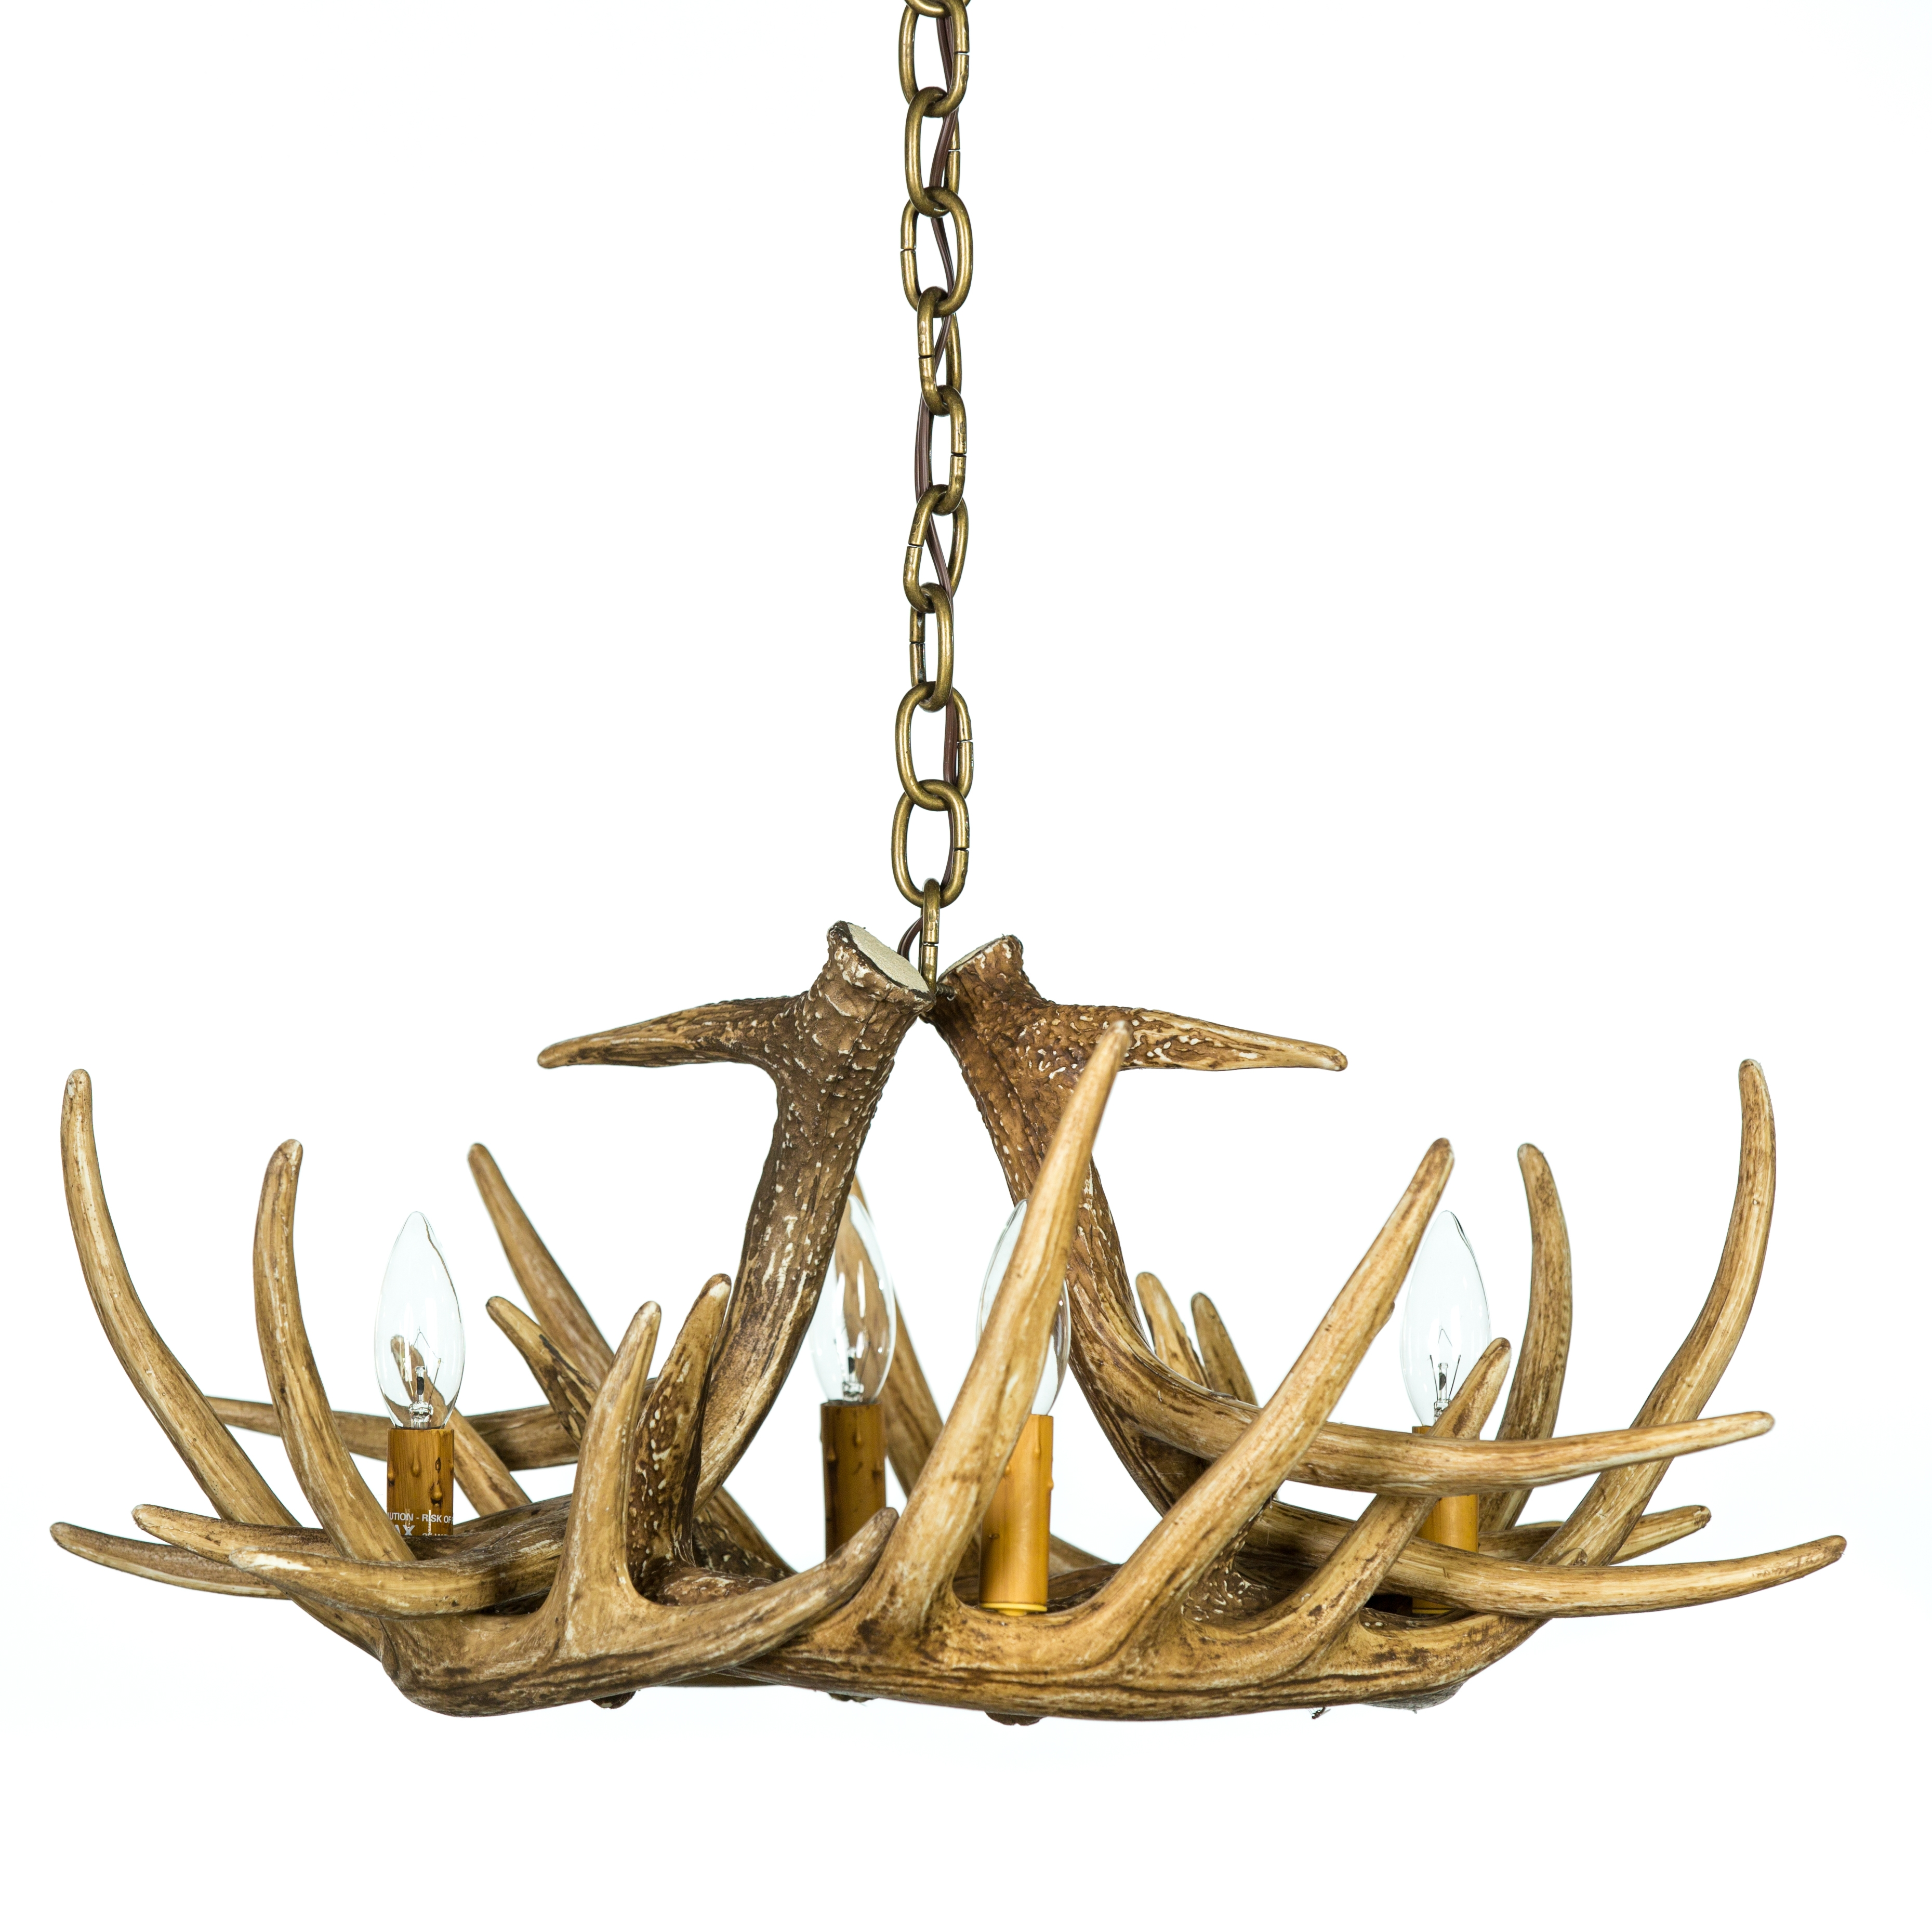 Antler Chandeliers Cast Horn Designs Within Antler Chandeliers (Image 3 of 15)